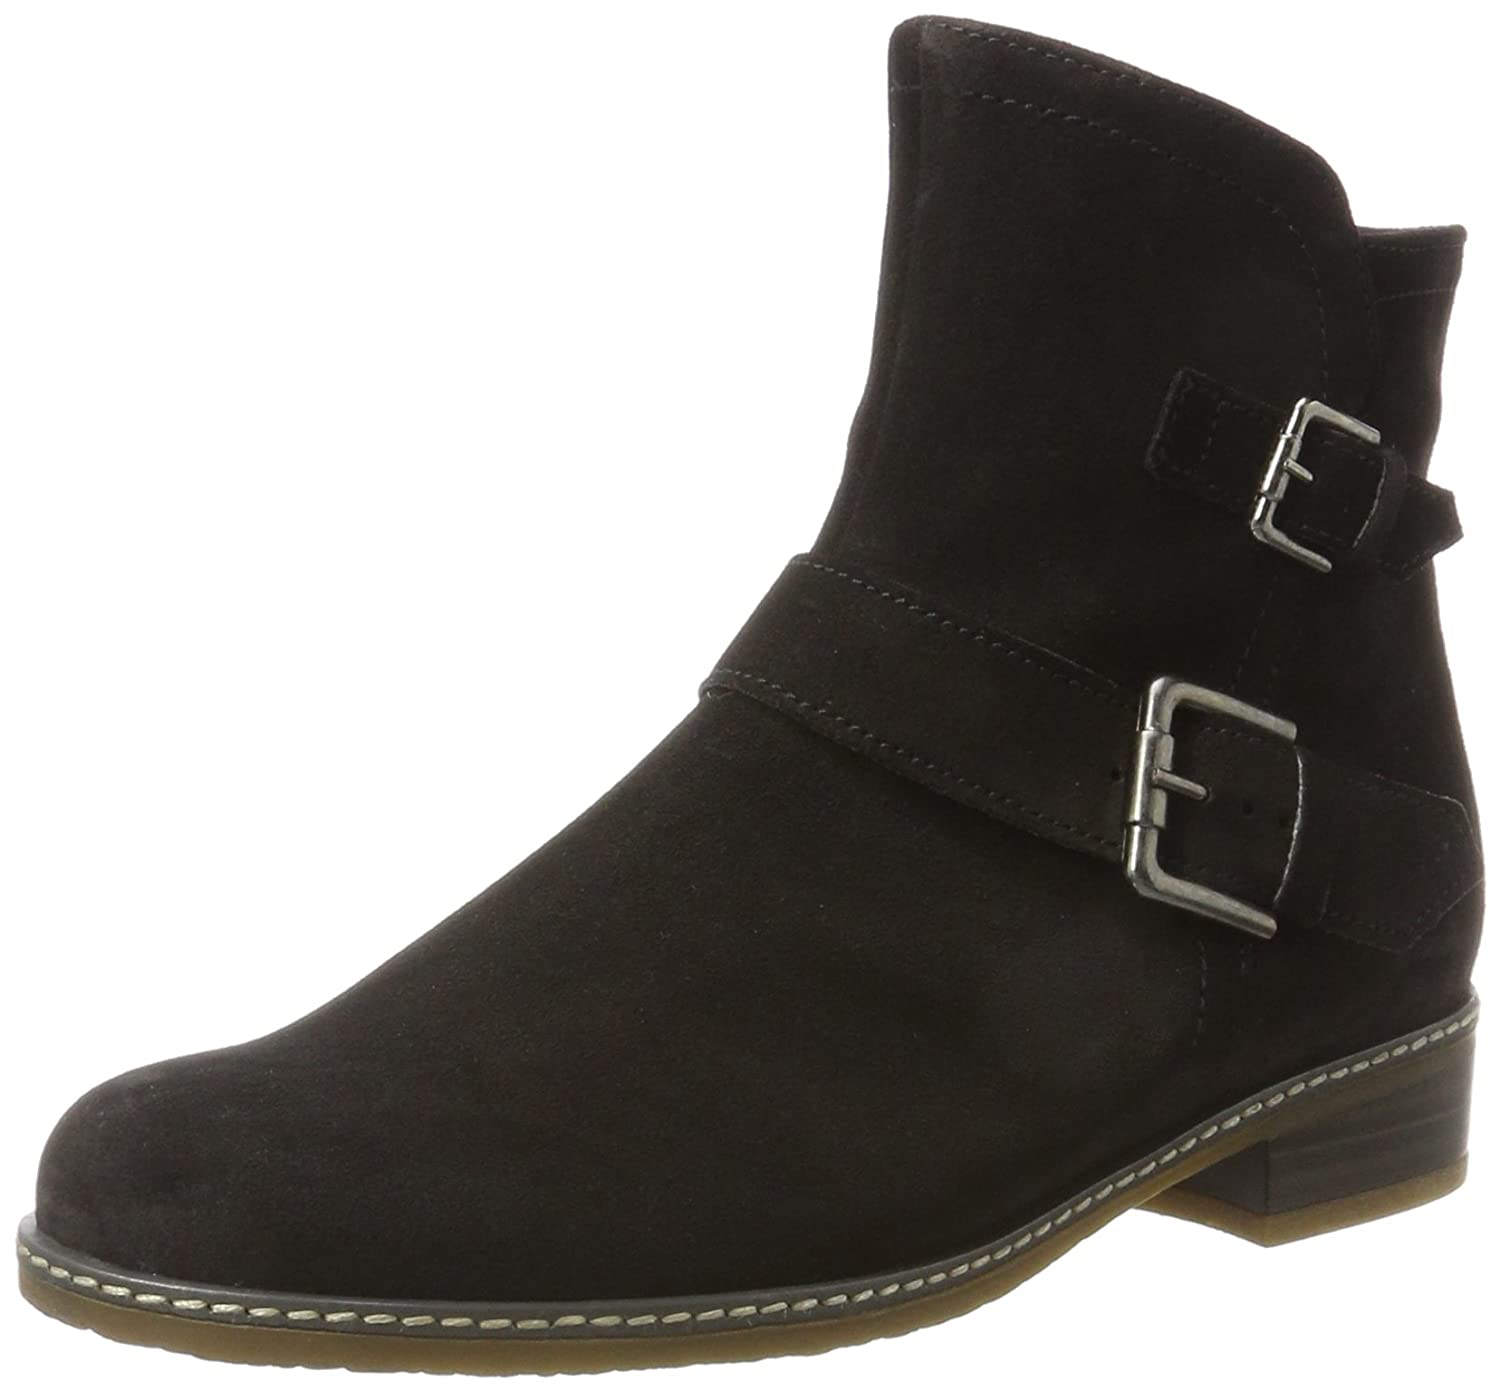 Gabor 17622 Shoes Comfort Sport, Shoes Bottes Bottes Femme Gris (39 Dark-grey Micro) 66764b6 - reprogrammed.space